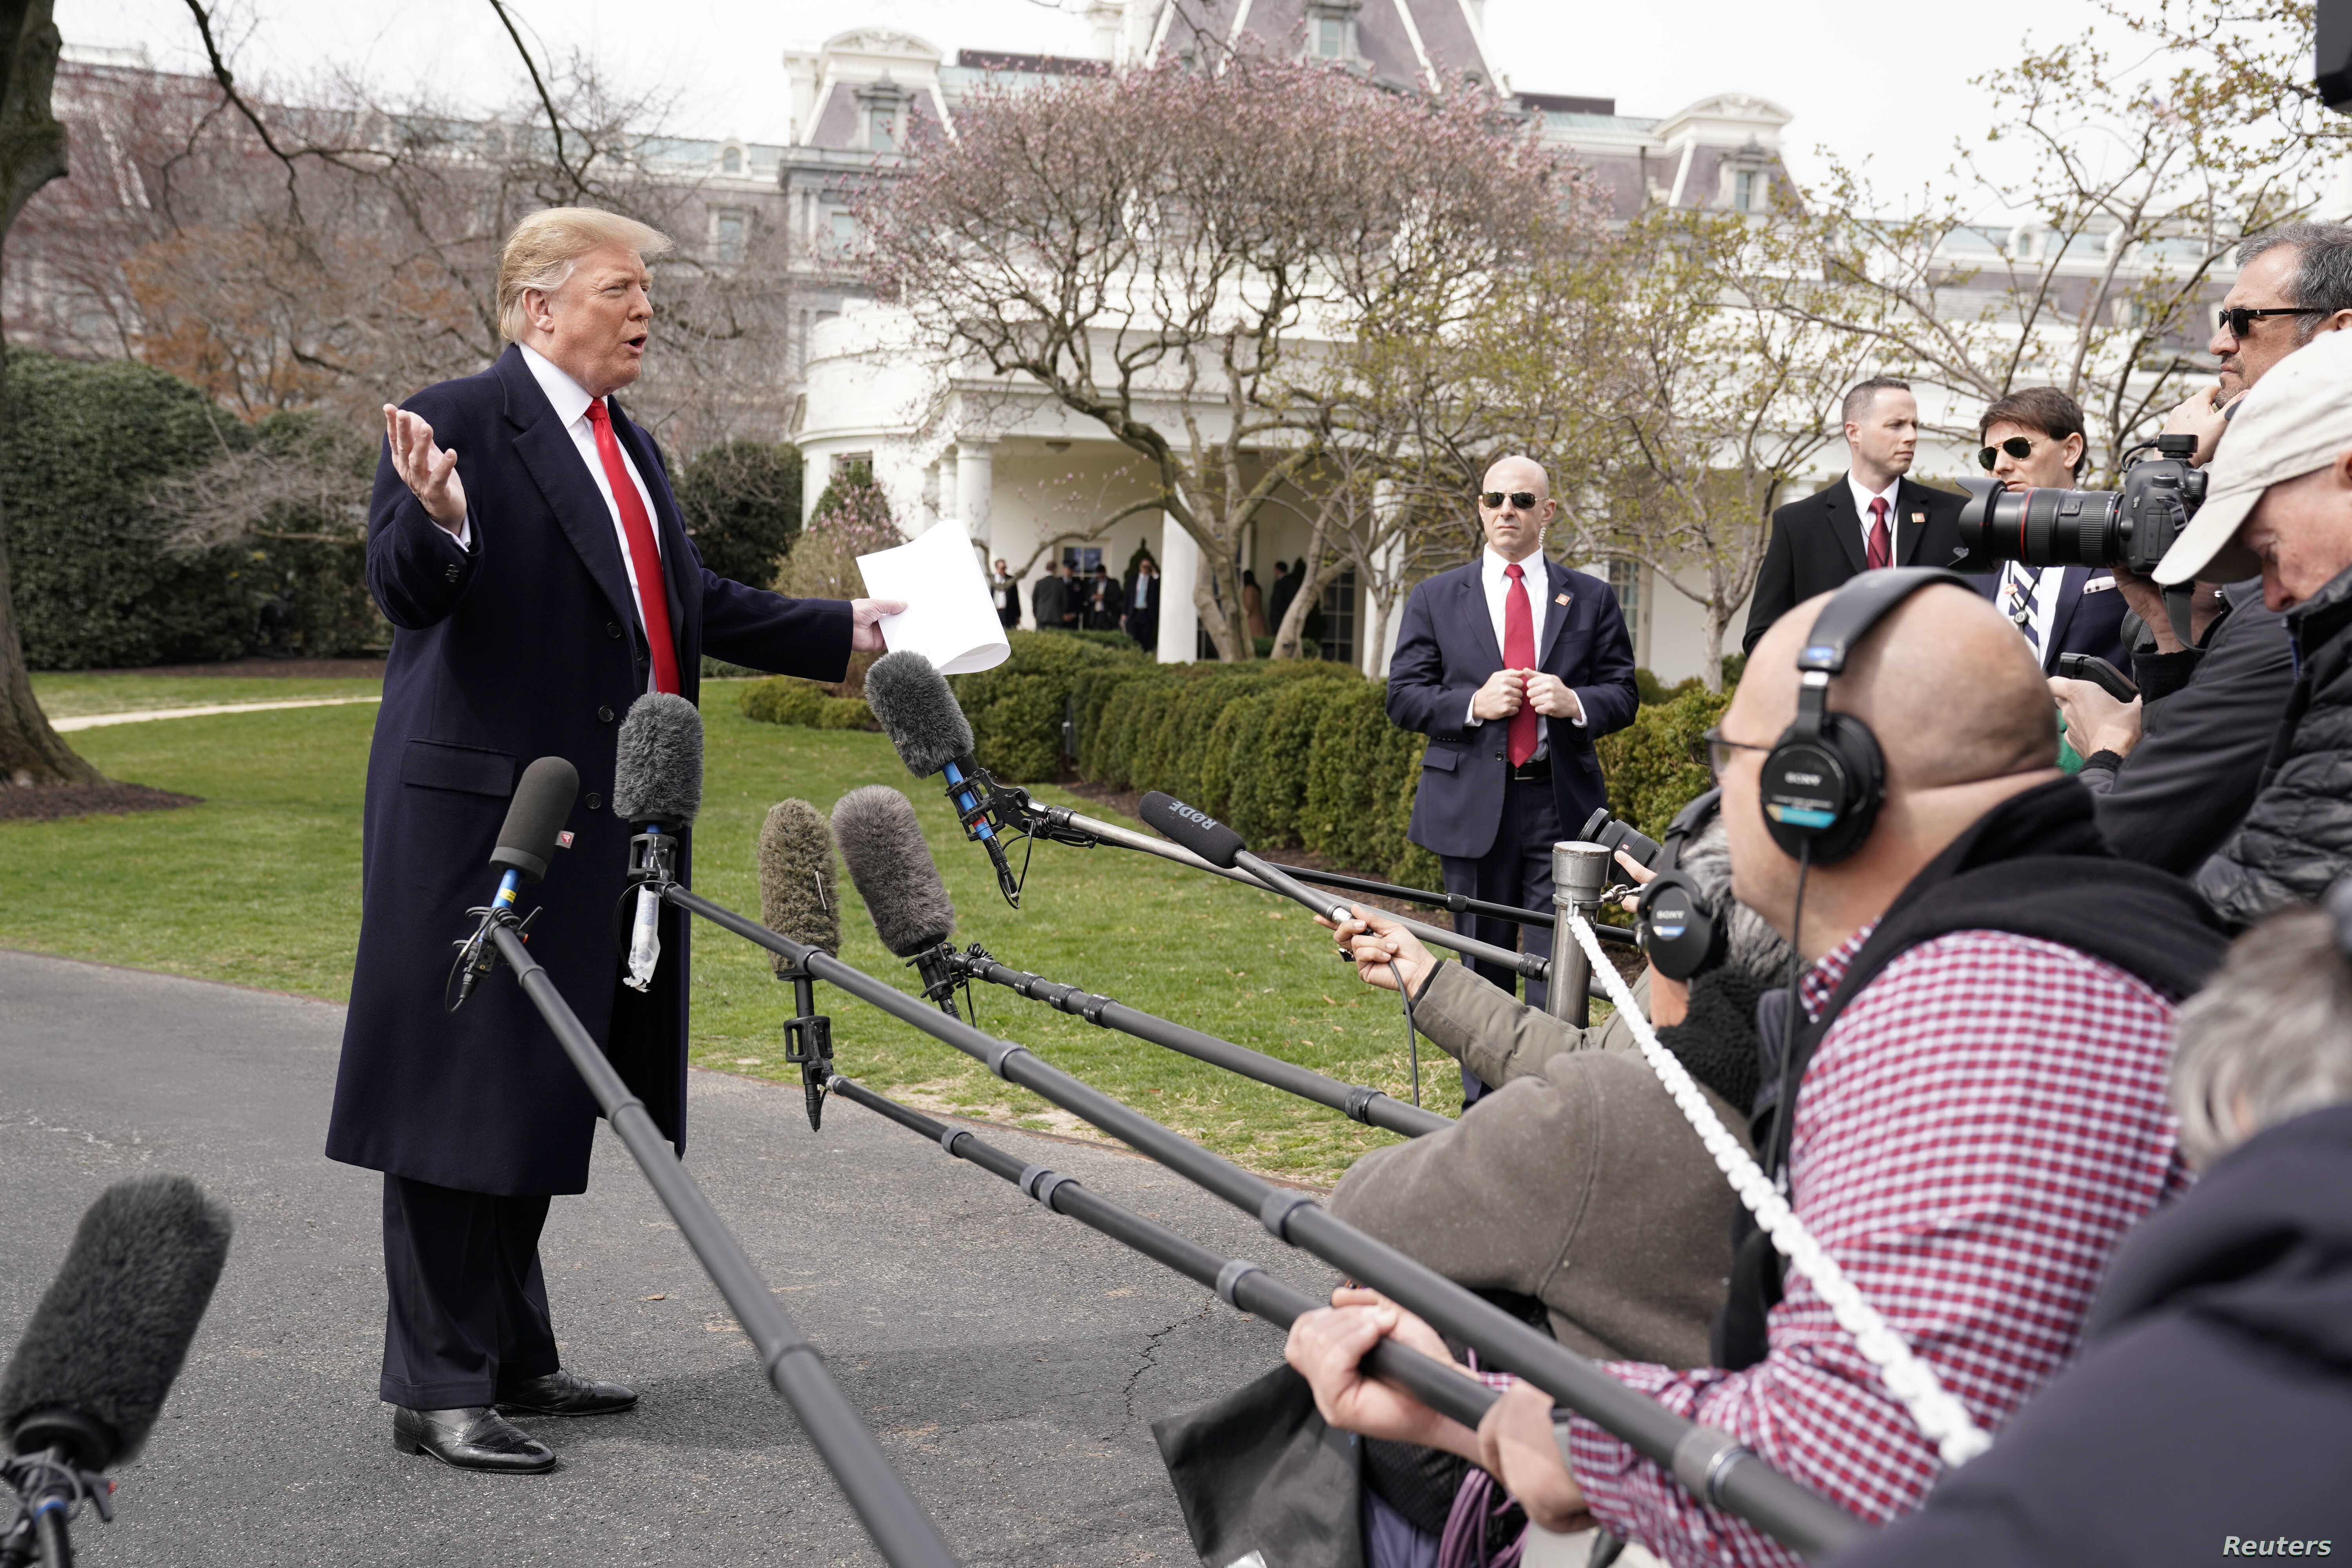 President Donald Trump talks to reporters as he departs on travel to Ohio from the White House in Washington, March 20, 2019.